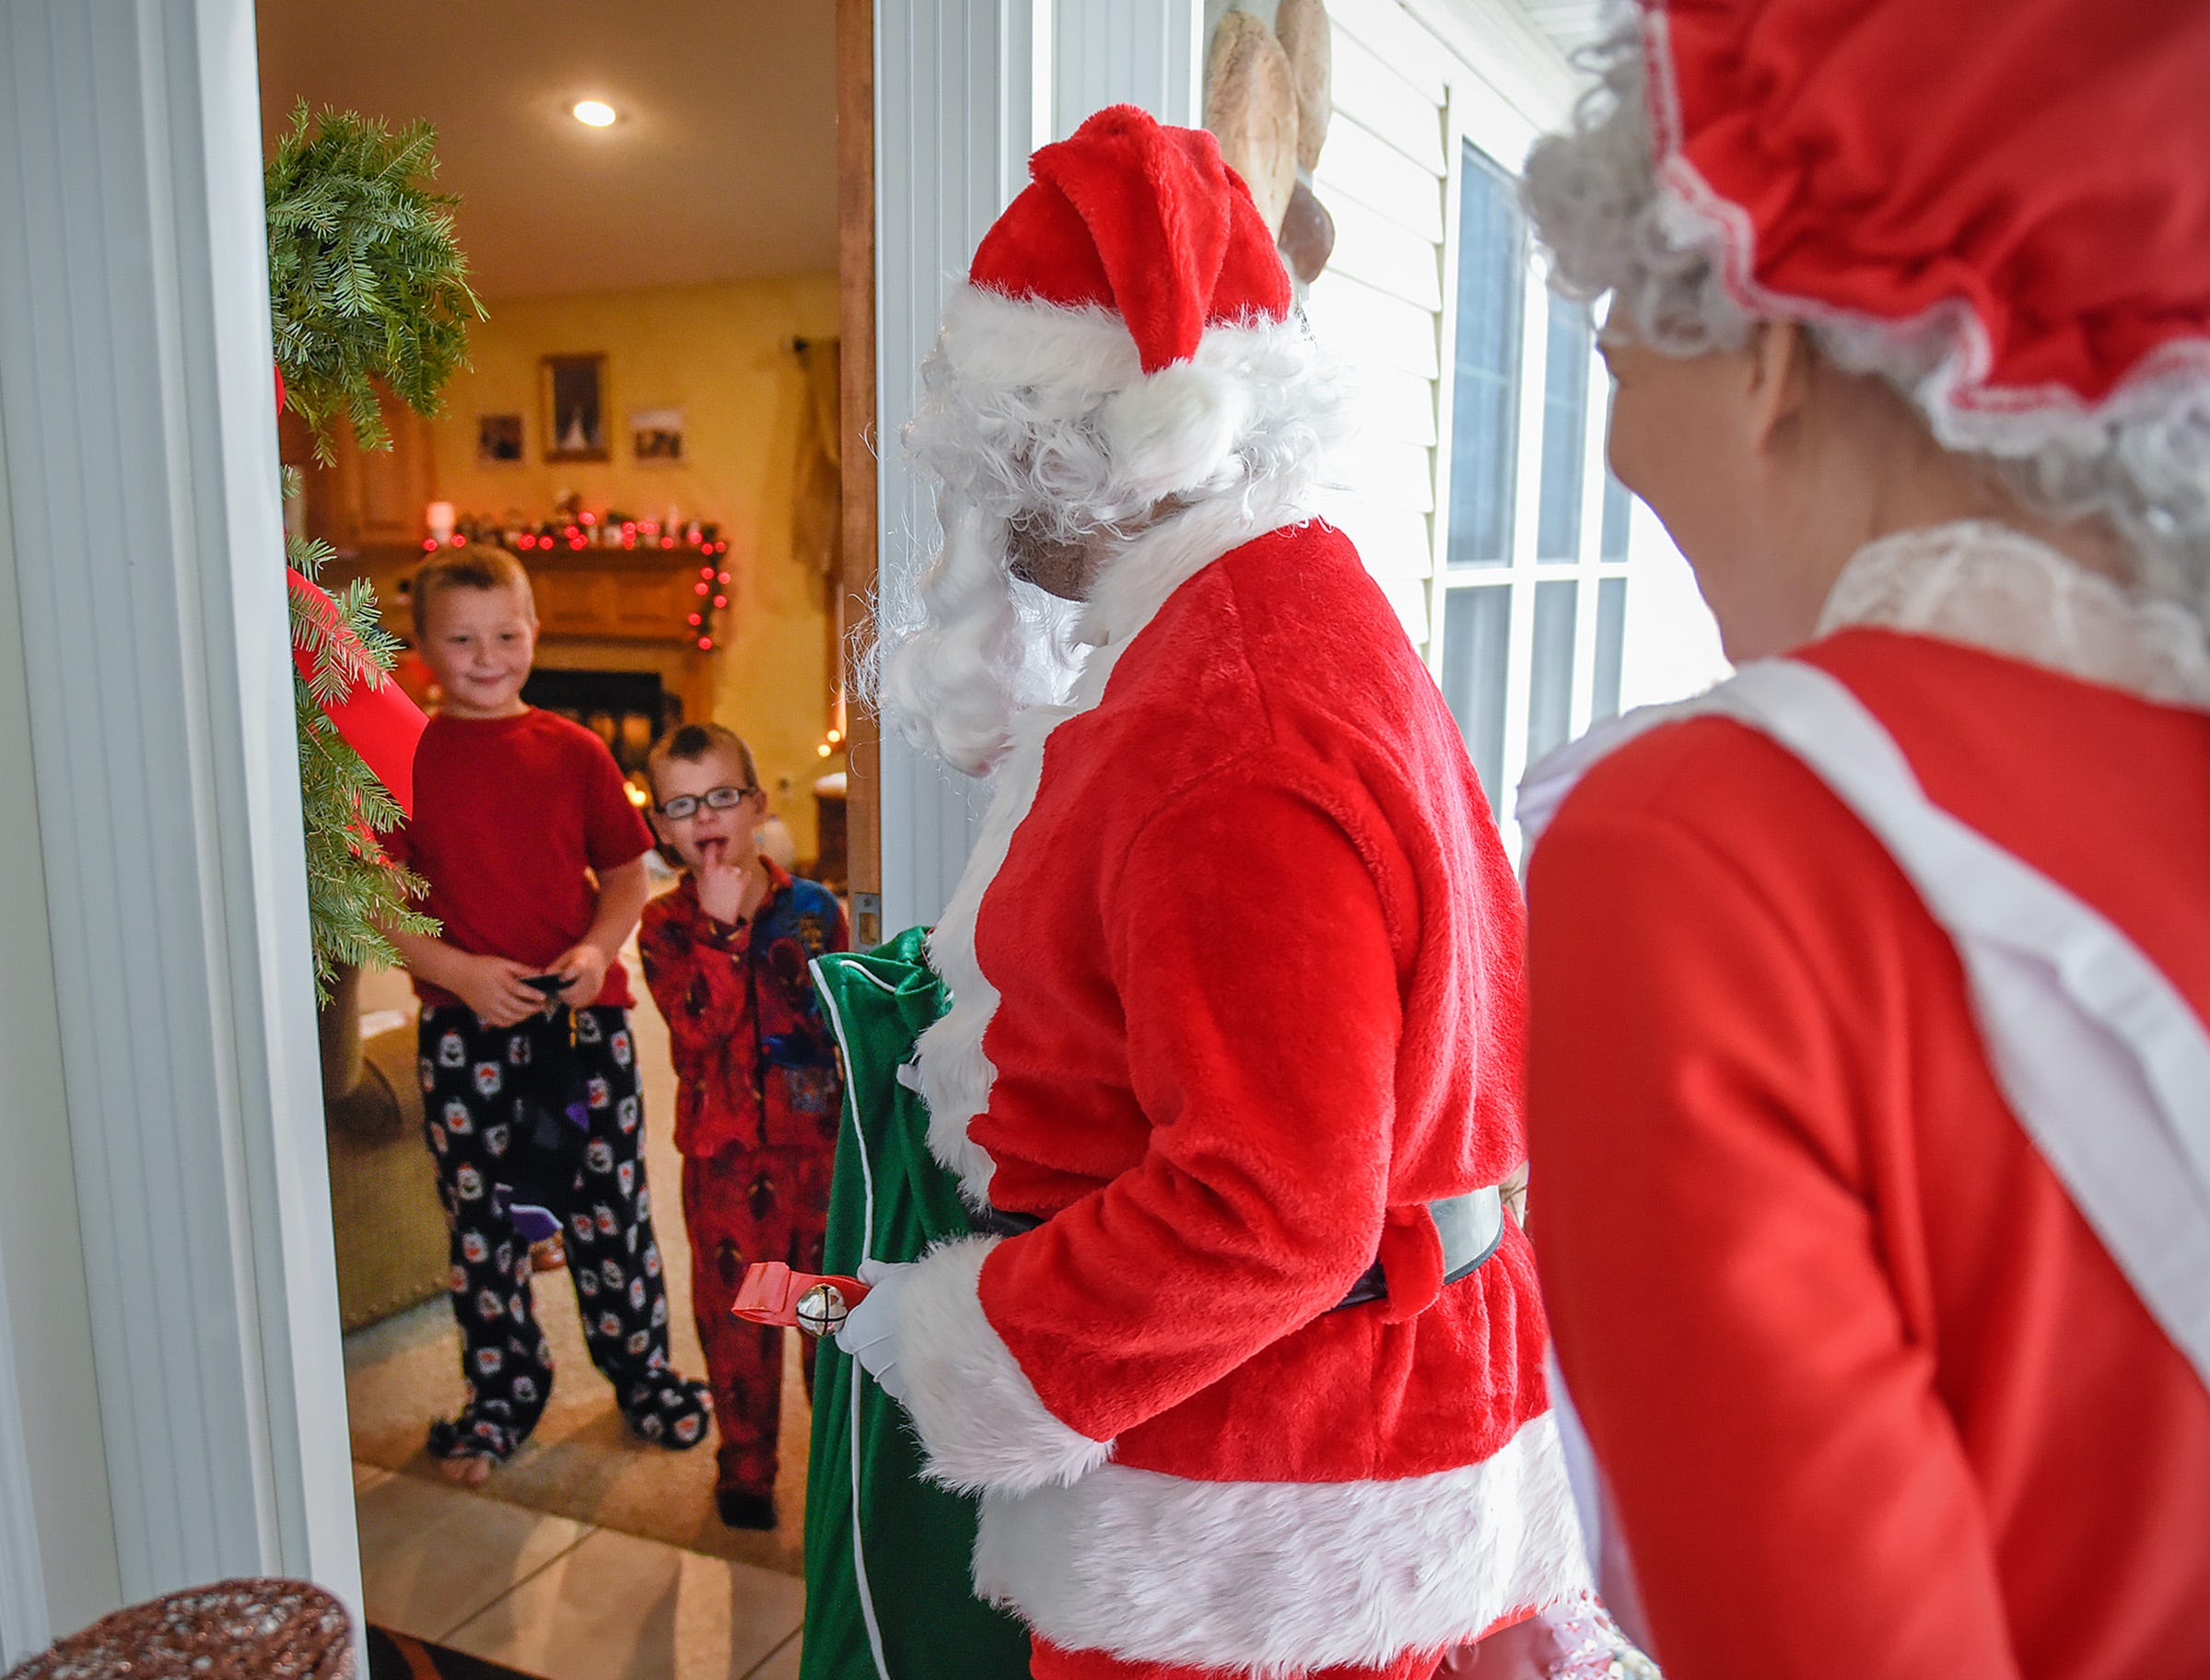 Landon Schneider, 8, and his brother Camran, 6, open the door to find Santa and Mrs. Claus Tuesday, Dec. 25, during a surprise visit to their home in Kimball.